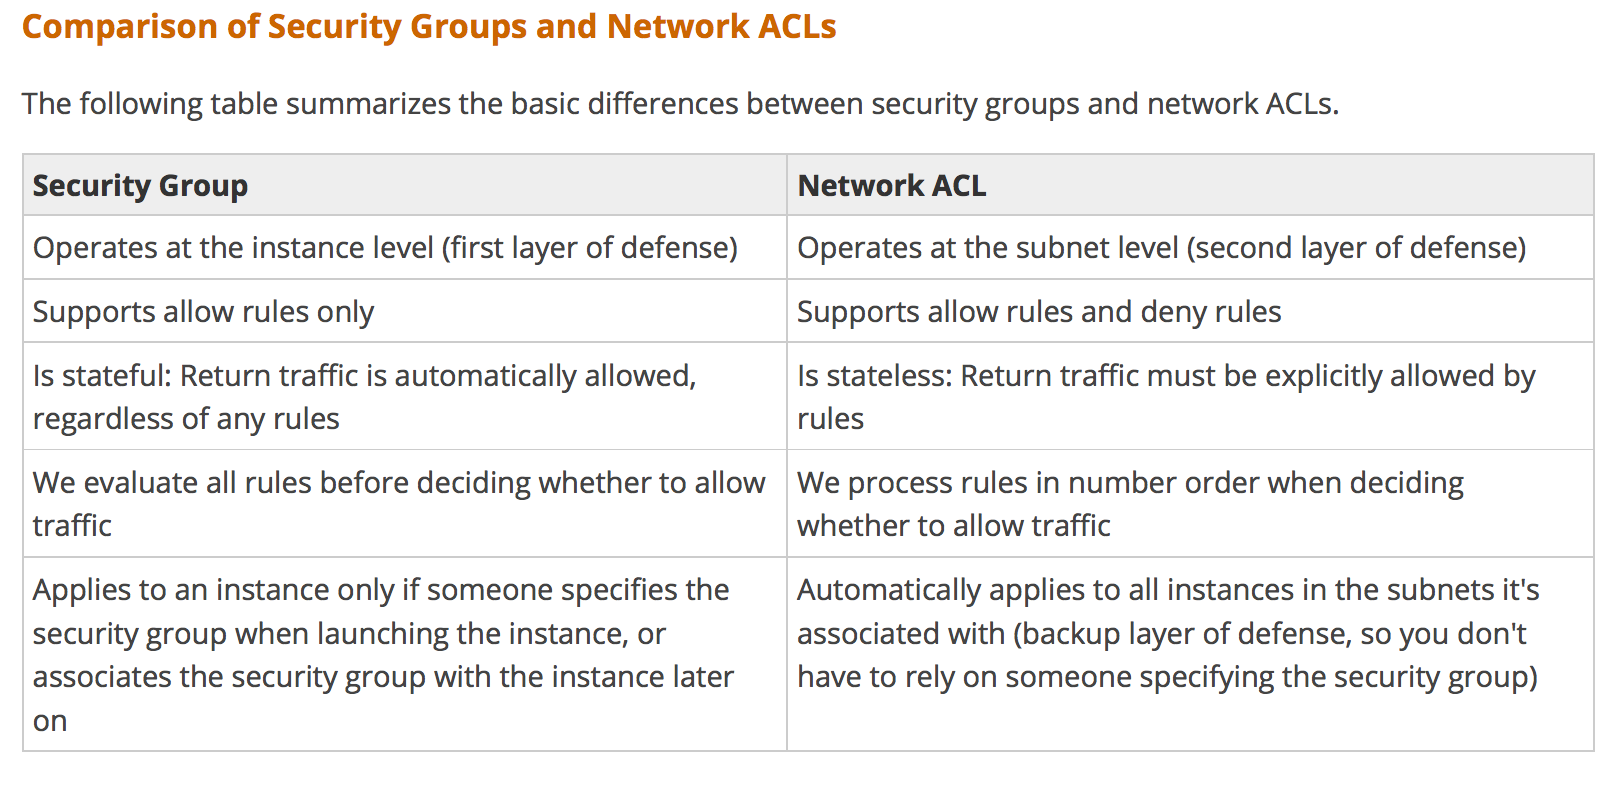 AWS VPC - Security Groups vs NACLs